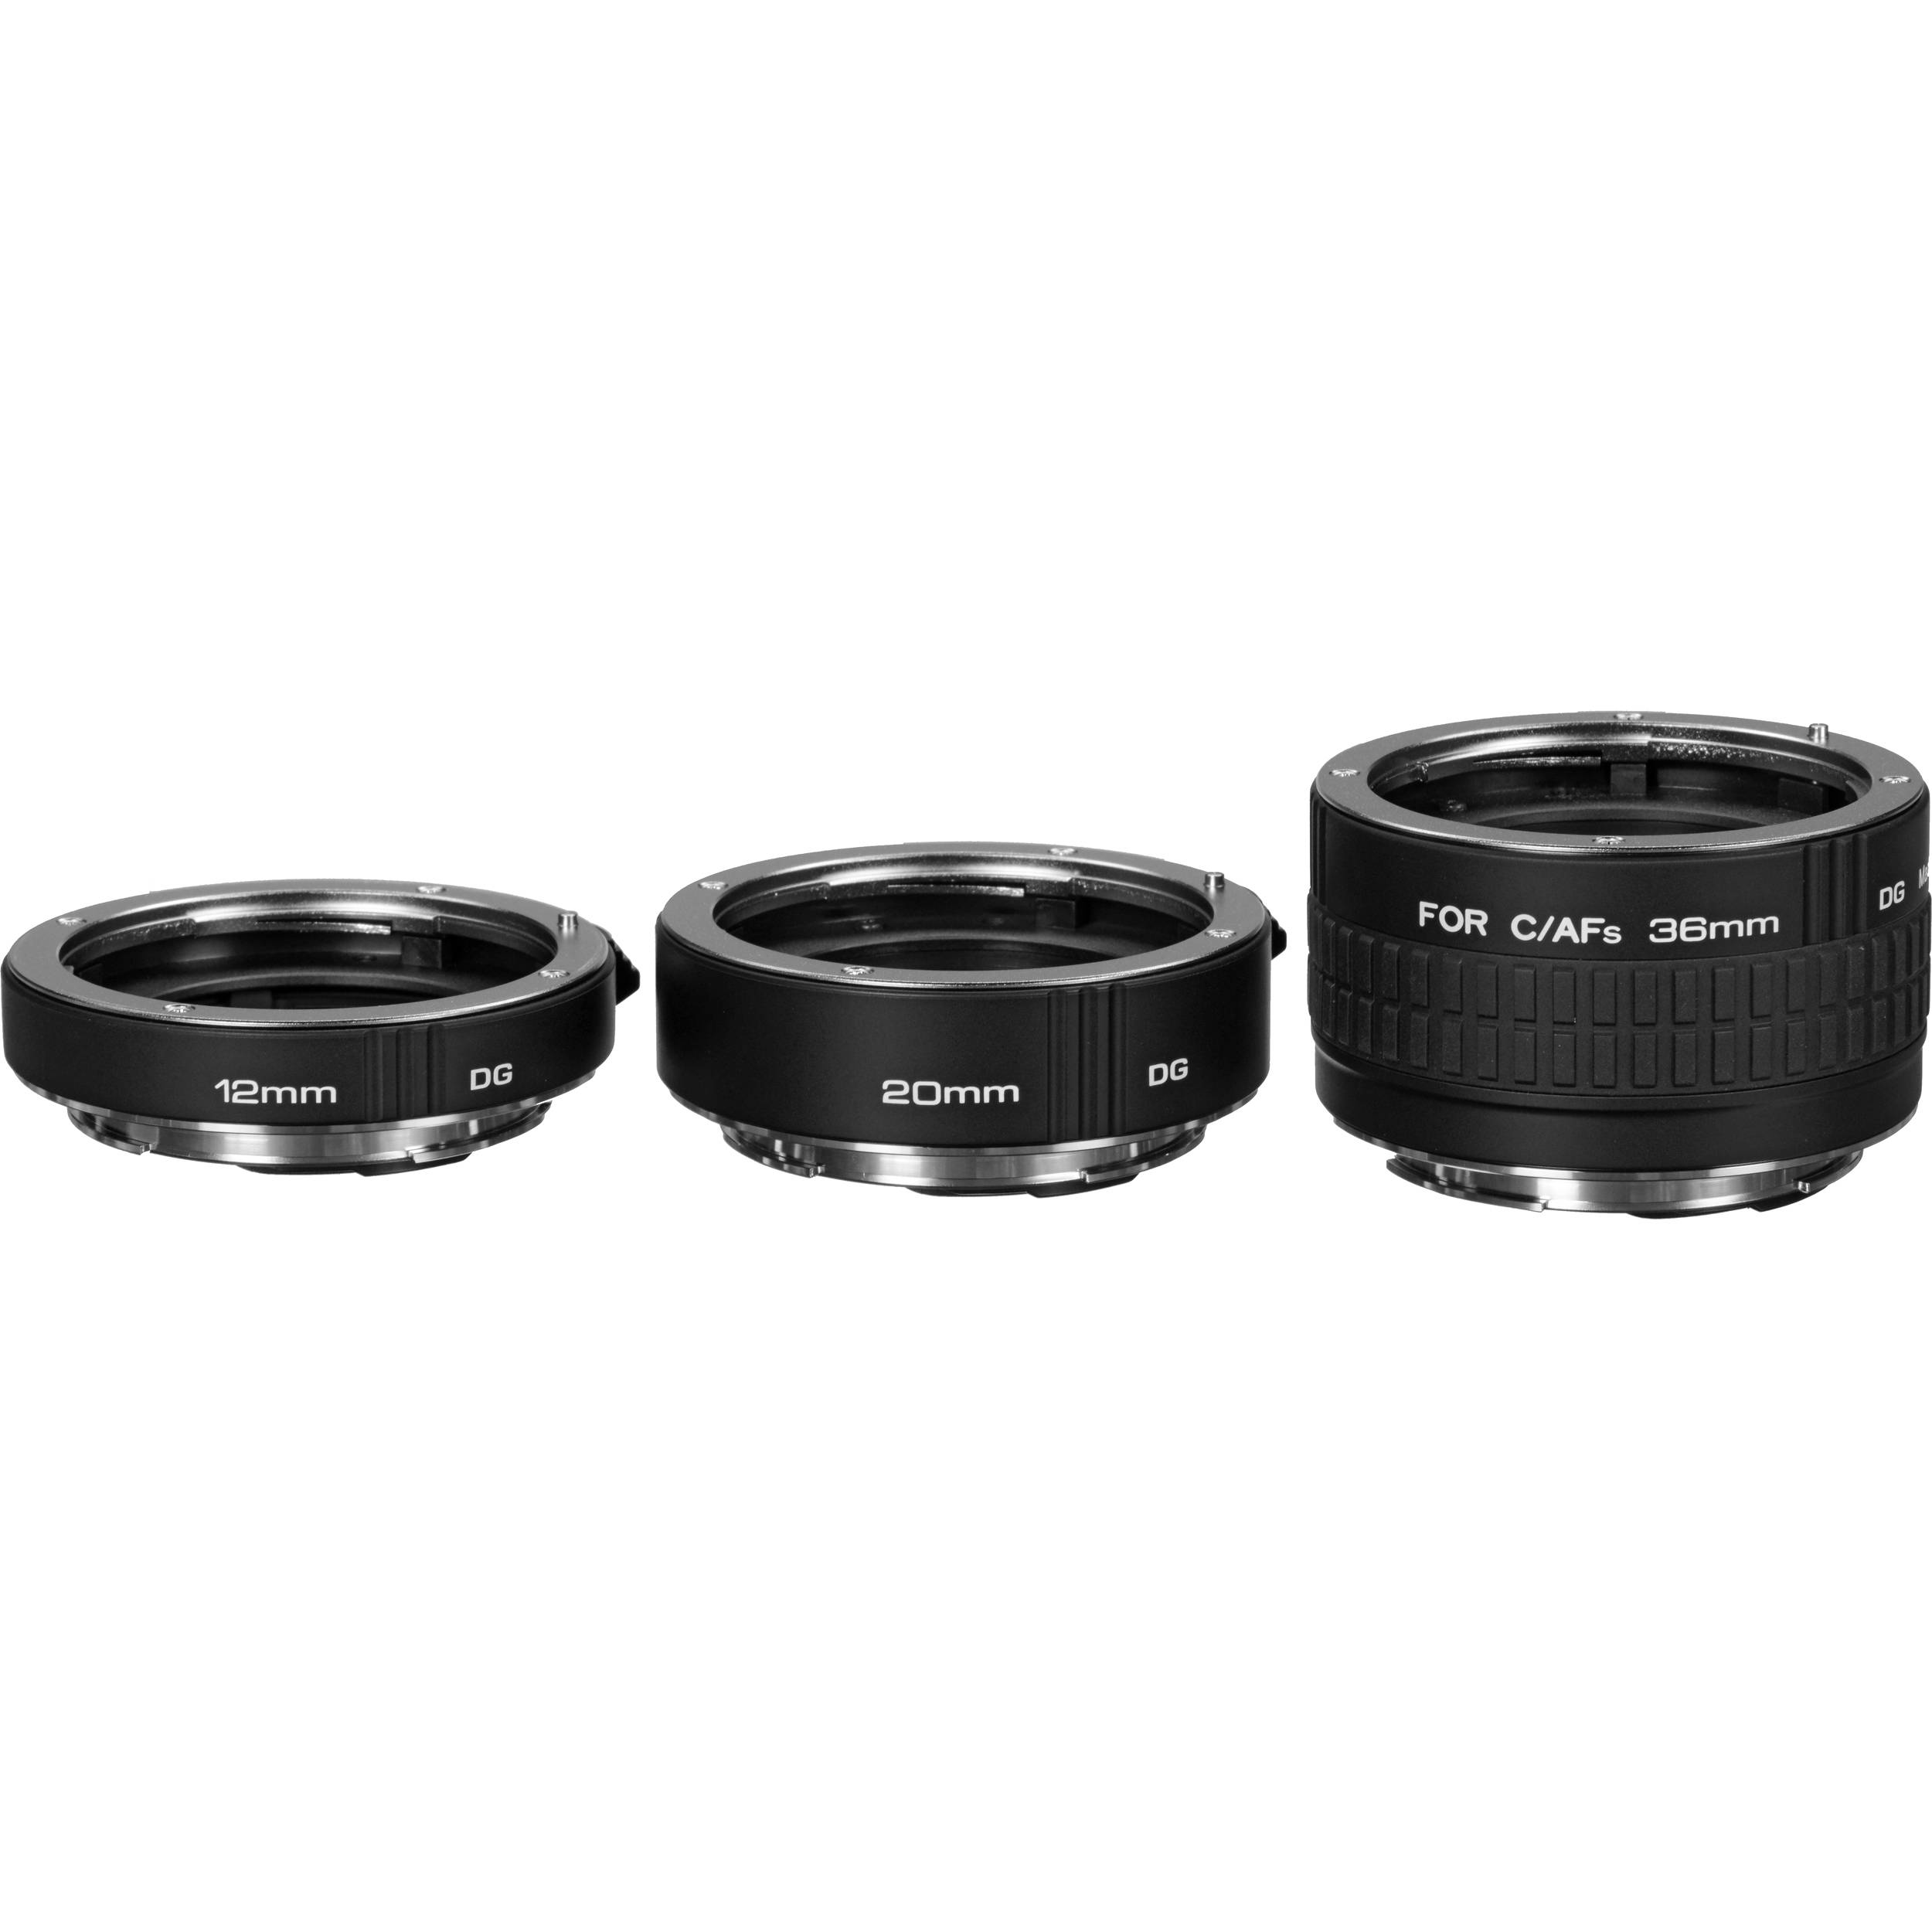 Kenko Auto Extension Tube Set Dg For Canon Eos A Extubedg C Bh 6d Kit 24 105mm F 40l Is Usm Wifi And Gps Lenses